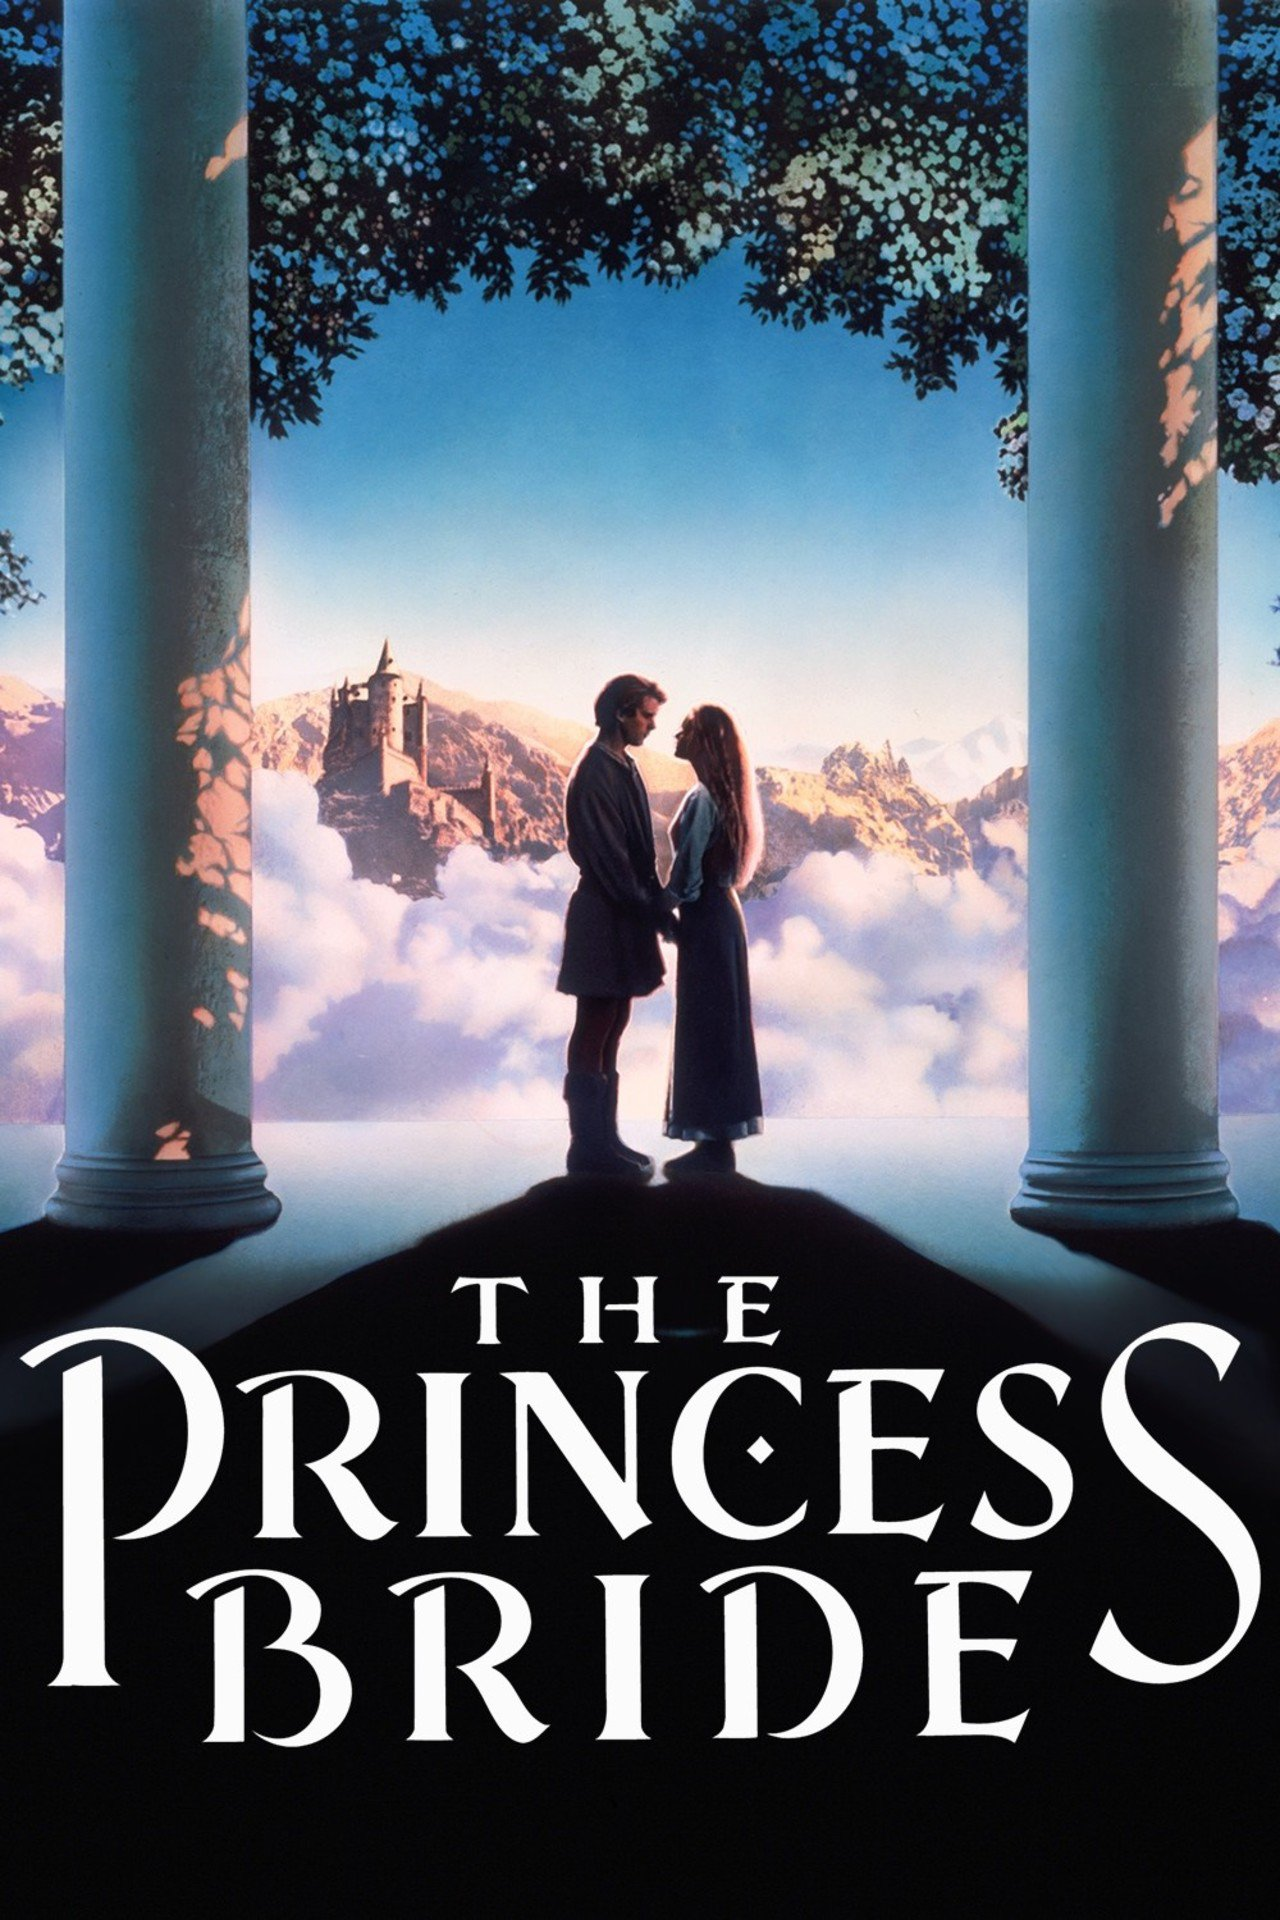 Poster for The Princess Bride